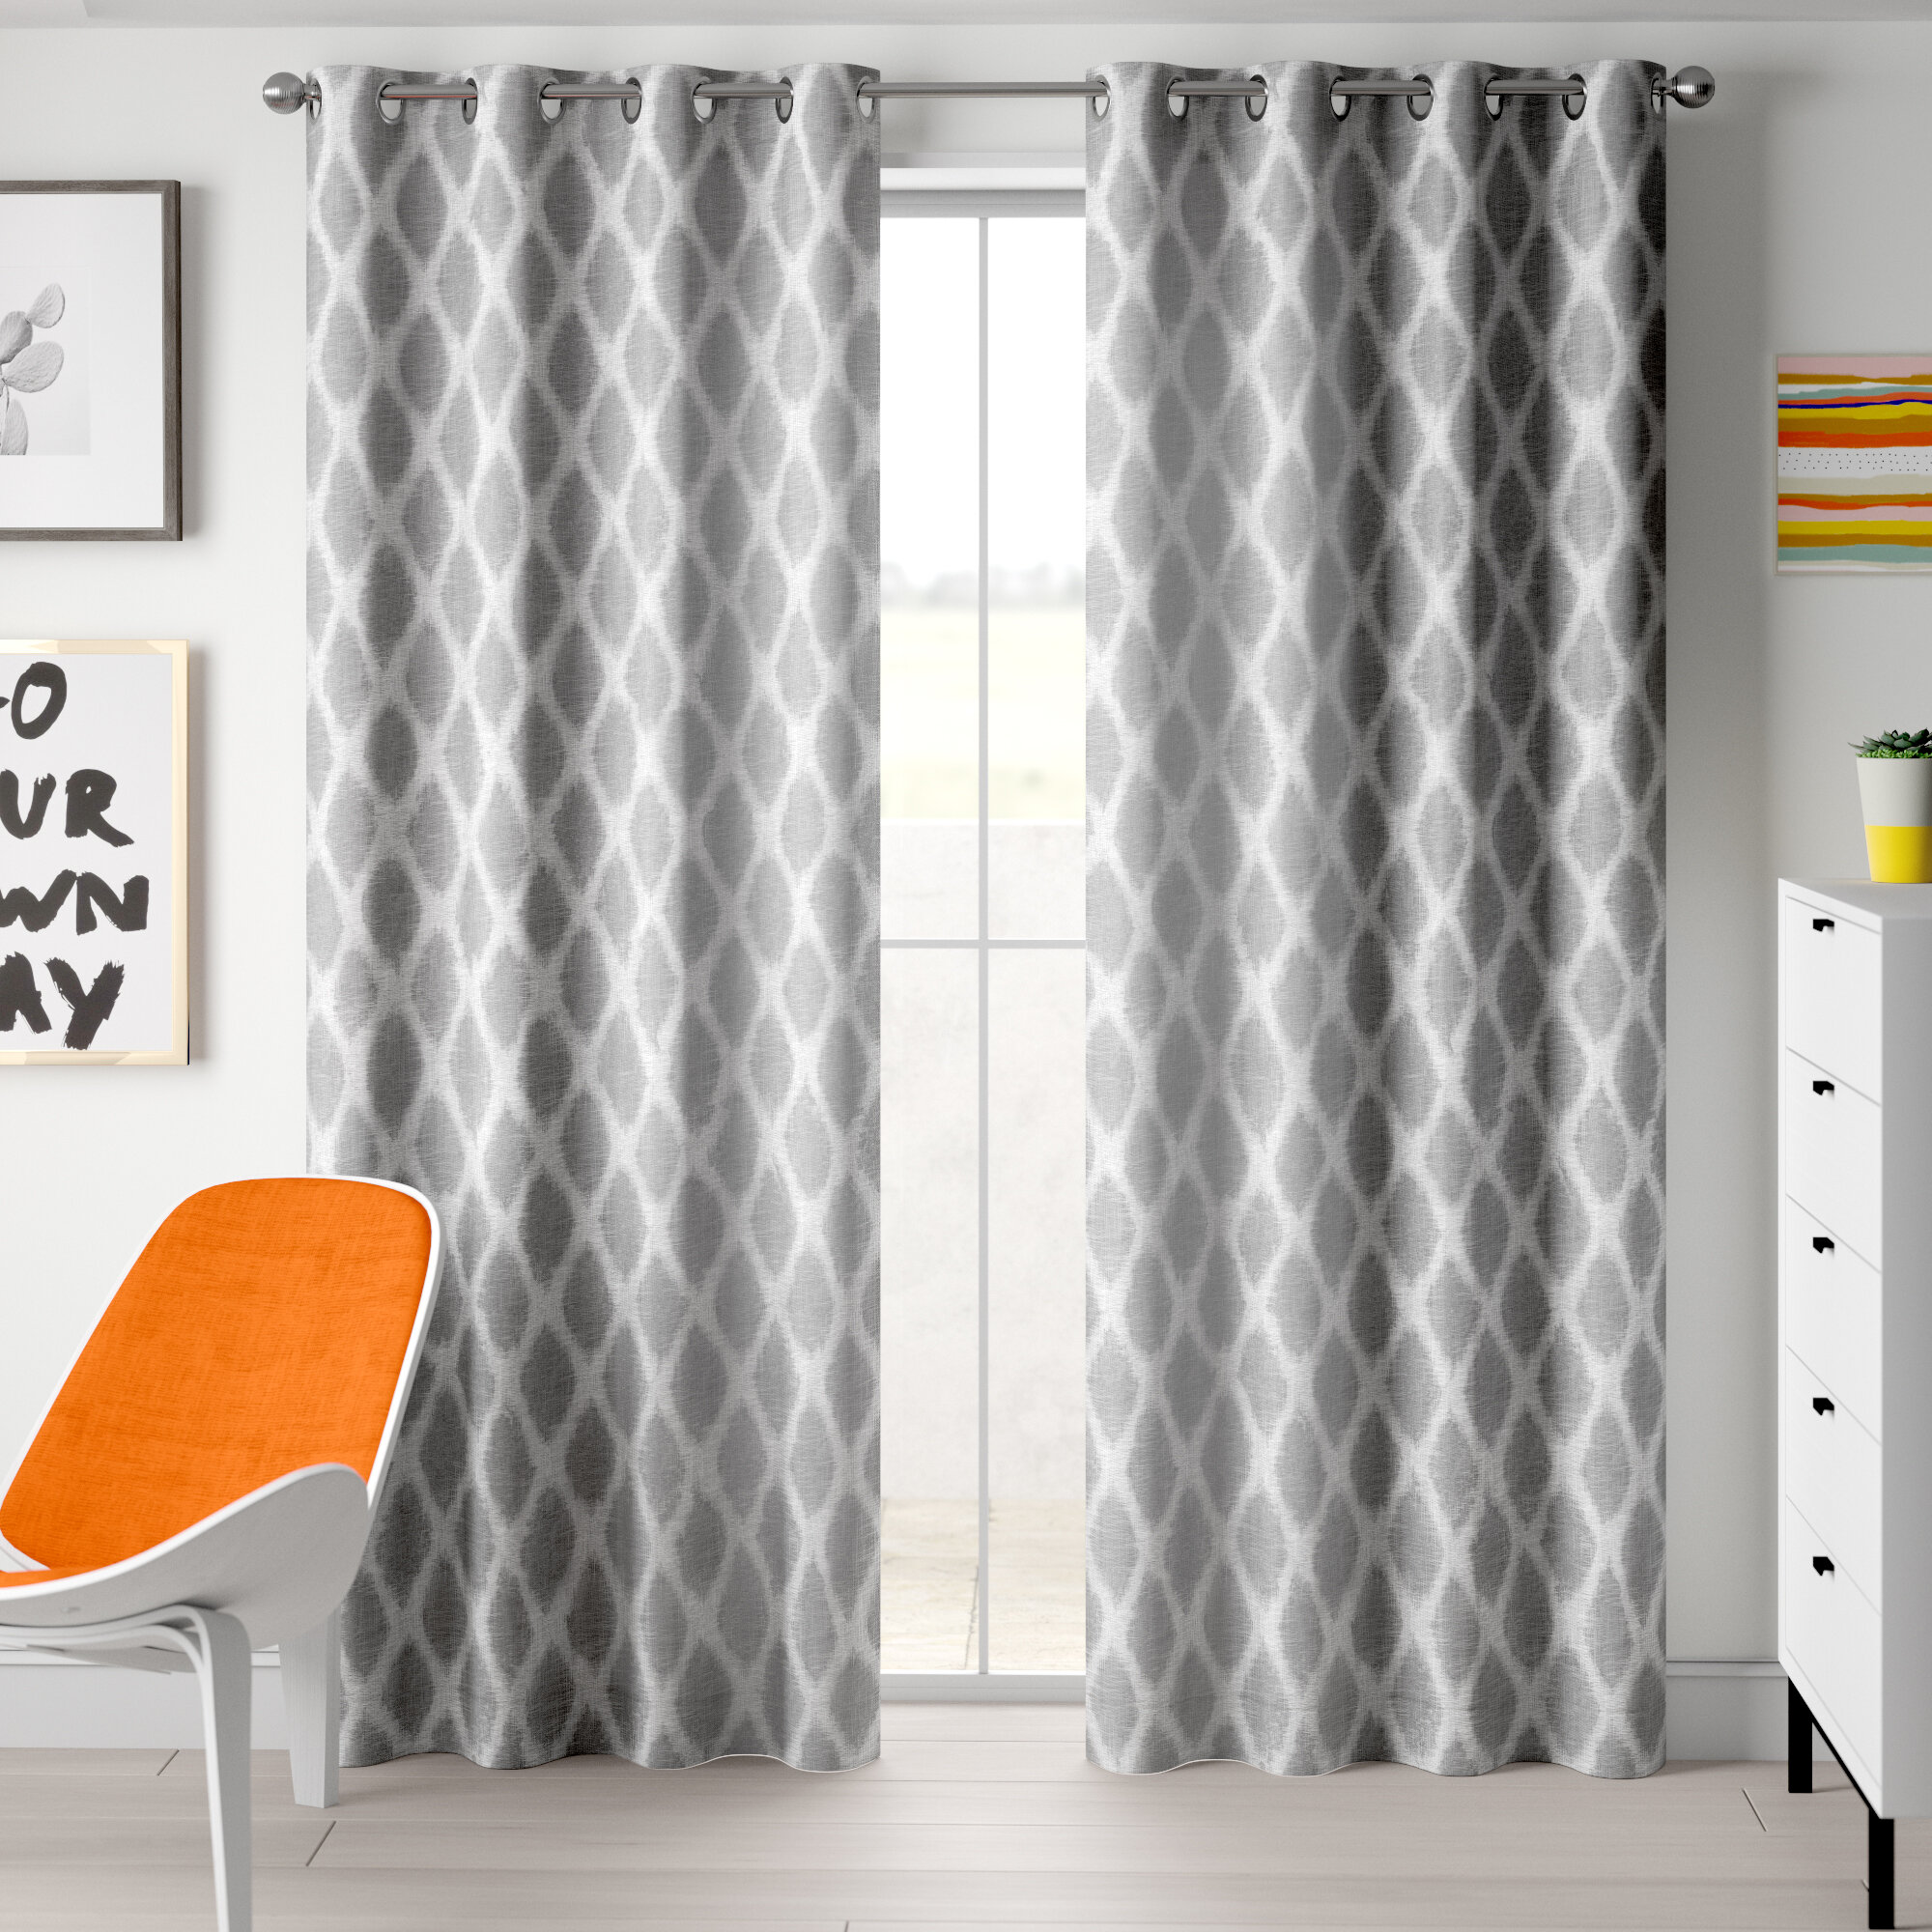 Lined Curtains Drapes You Ll Love In 2021 Wayfair